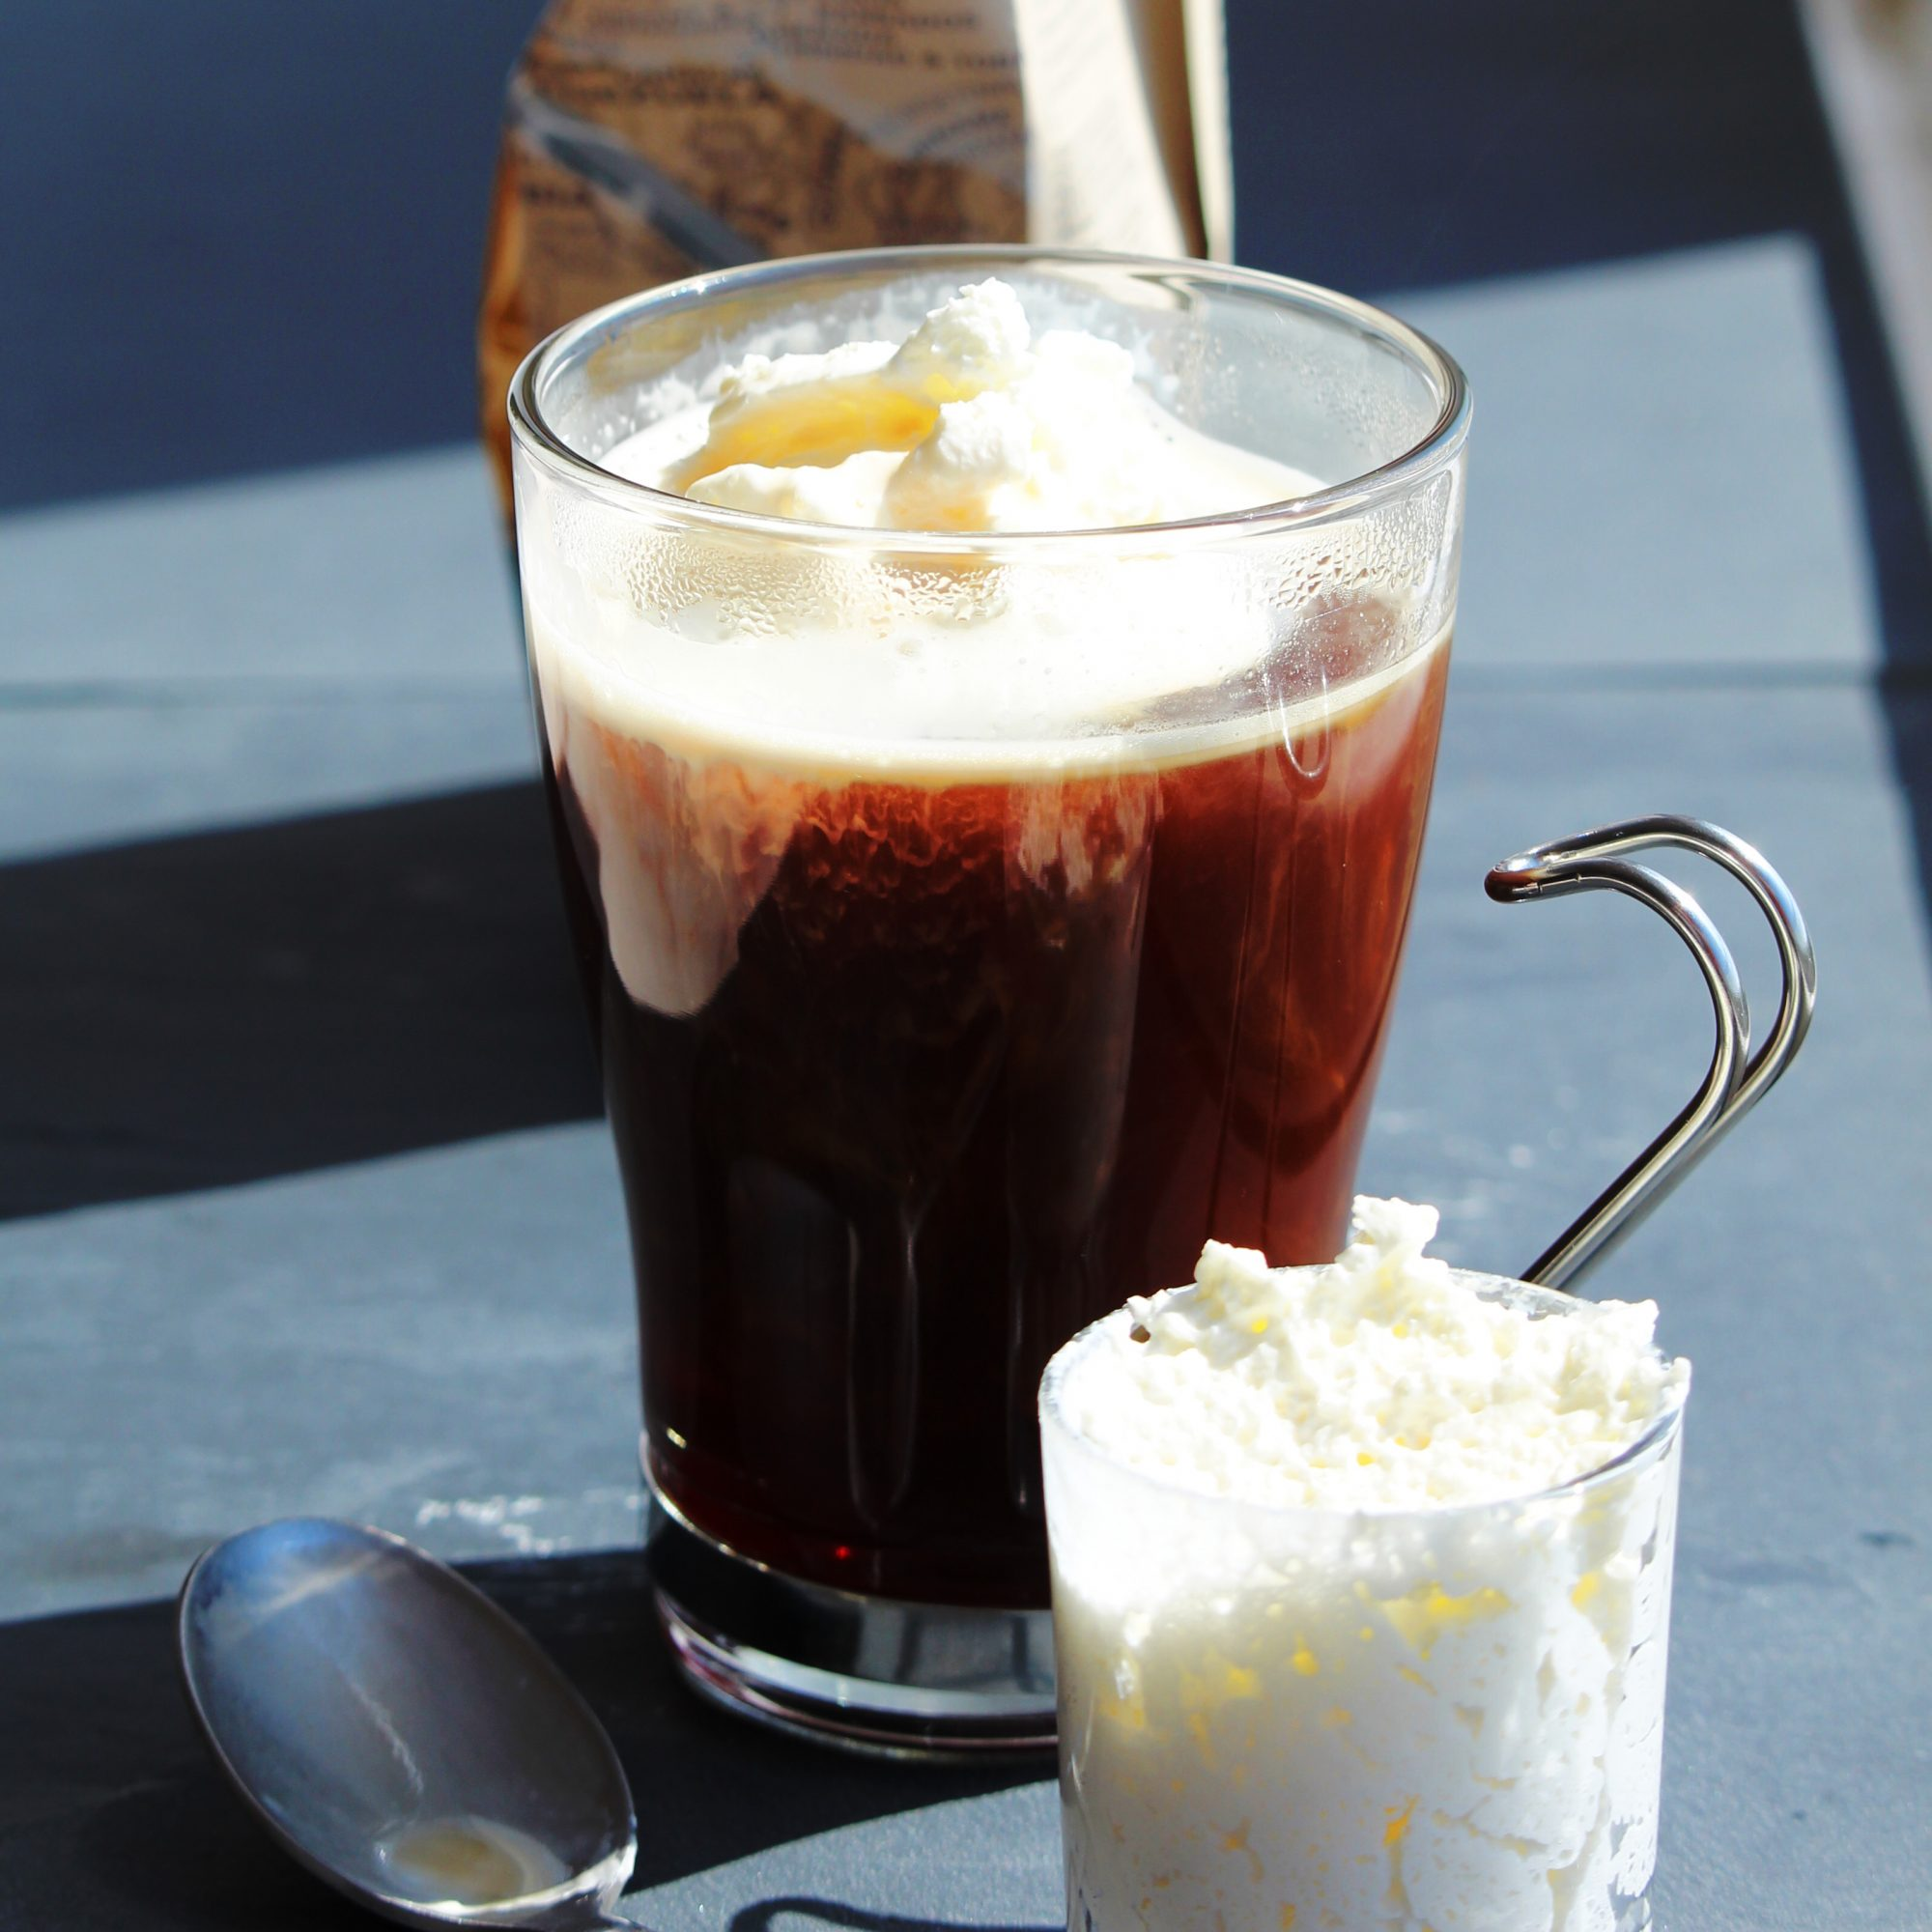 hot chocolate in a glass with whipped cream